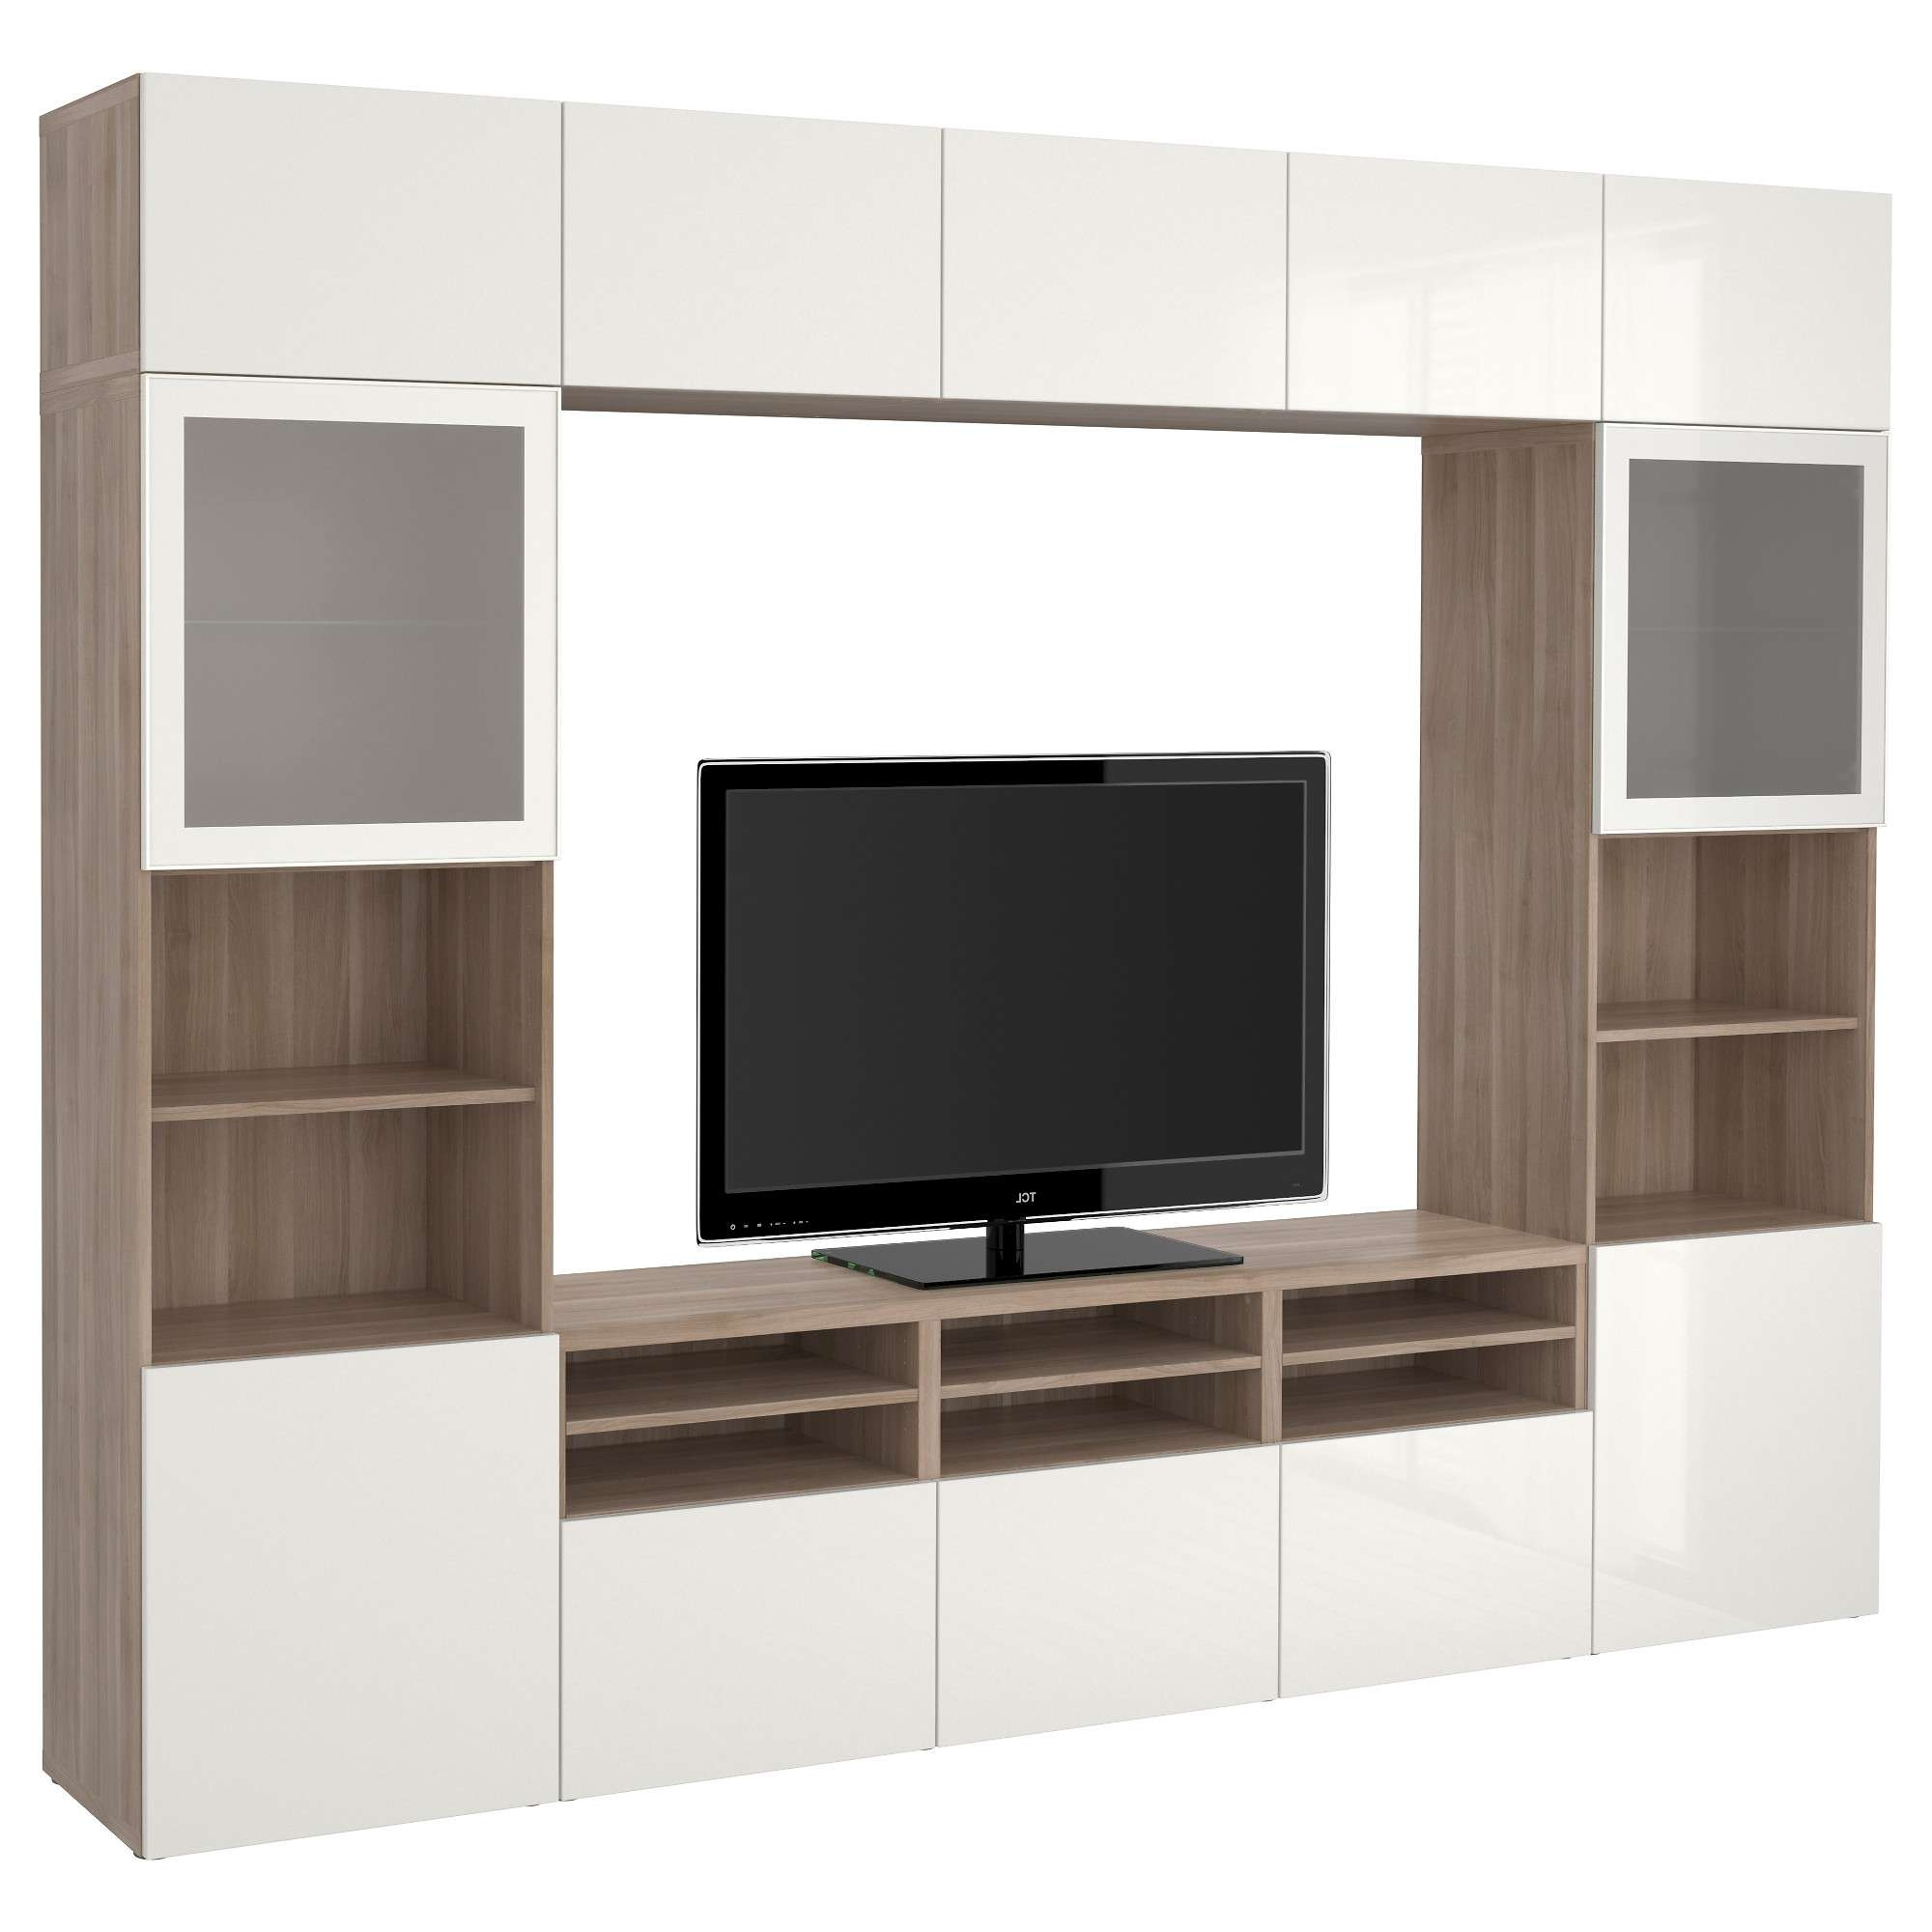 Modest Decoration Ikea Media Cabinet Best Home Furniture Design Pertaining To Tv Cabinets With Storage (View 11 of 20)